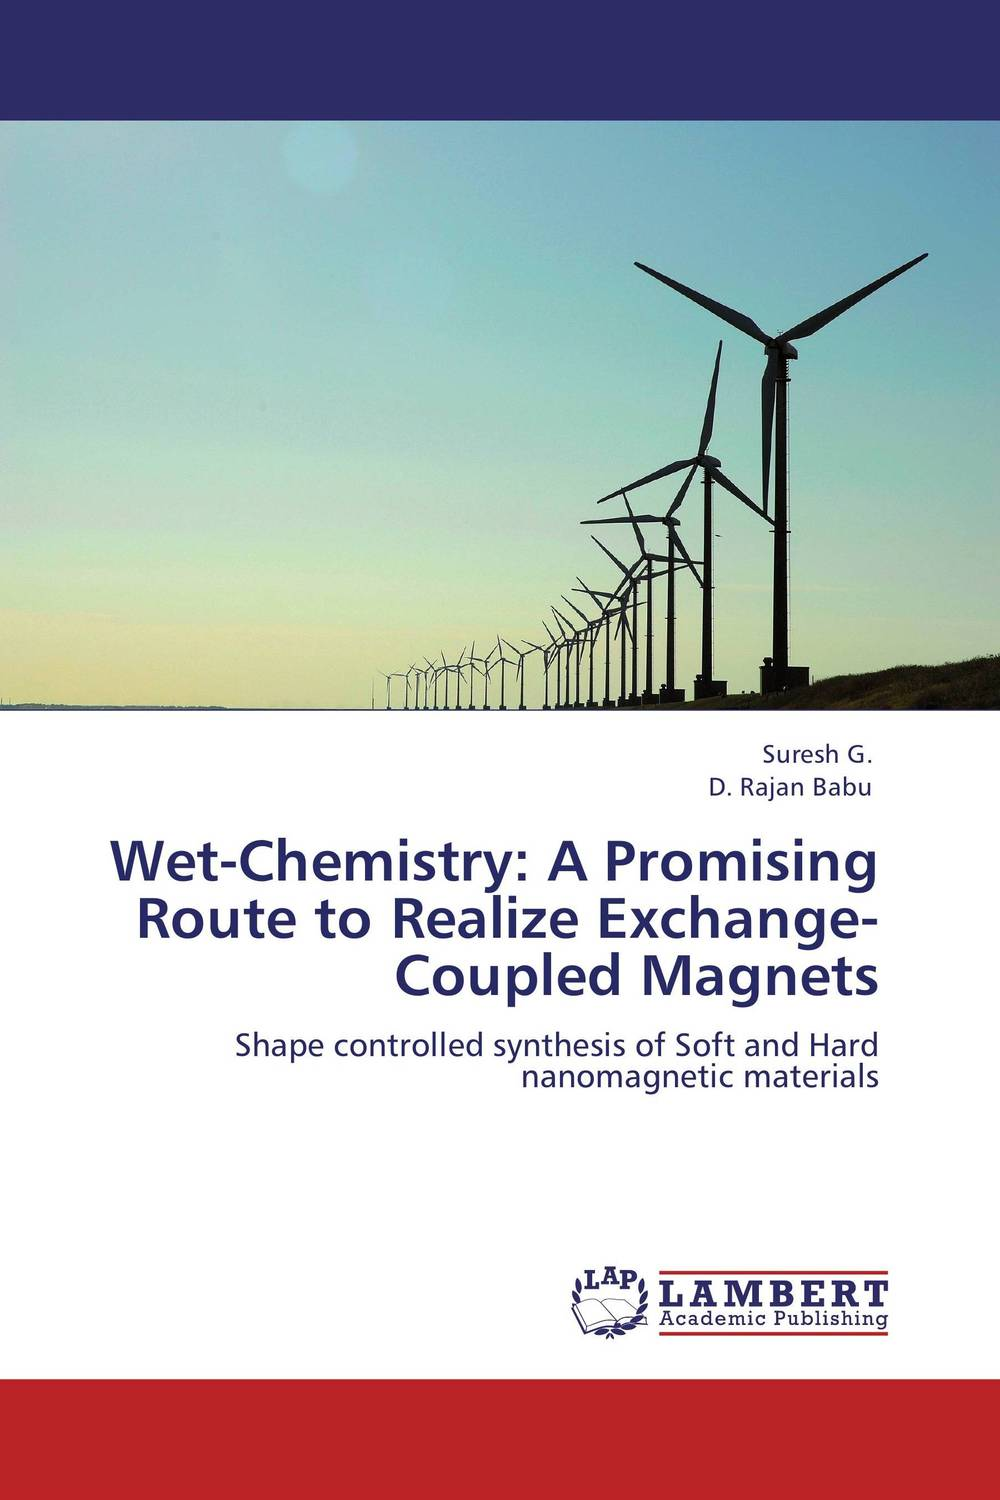 Wet-Chemistry: A Promising Route to Realize Exchange-Coupled Magnets d beskrovniy chemistry technology and properties of synthetic rubber